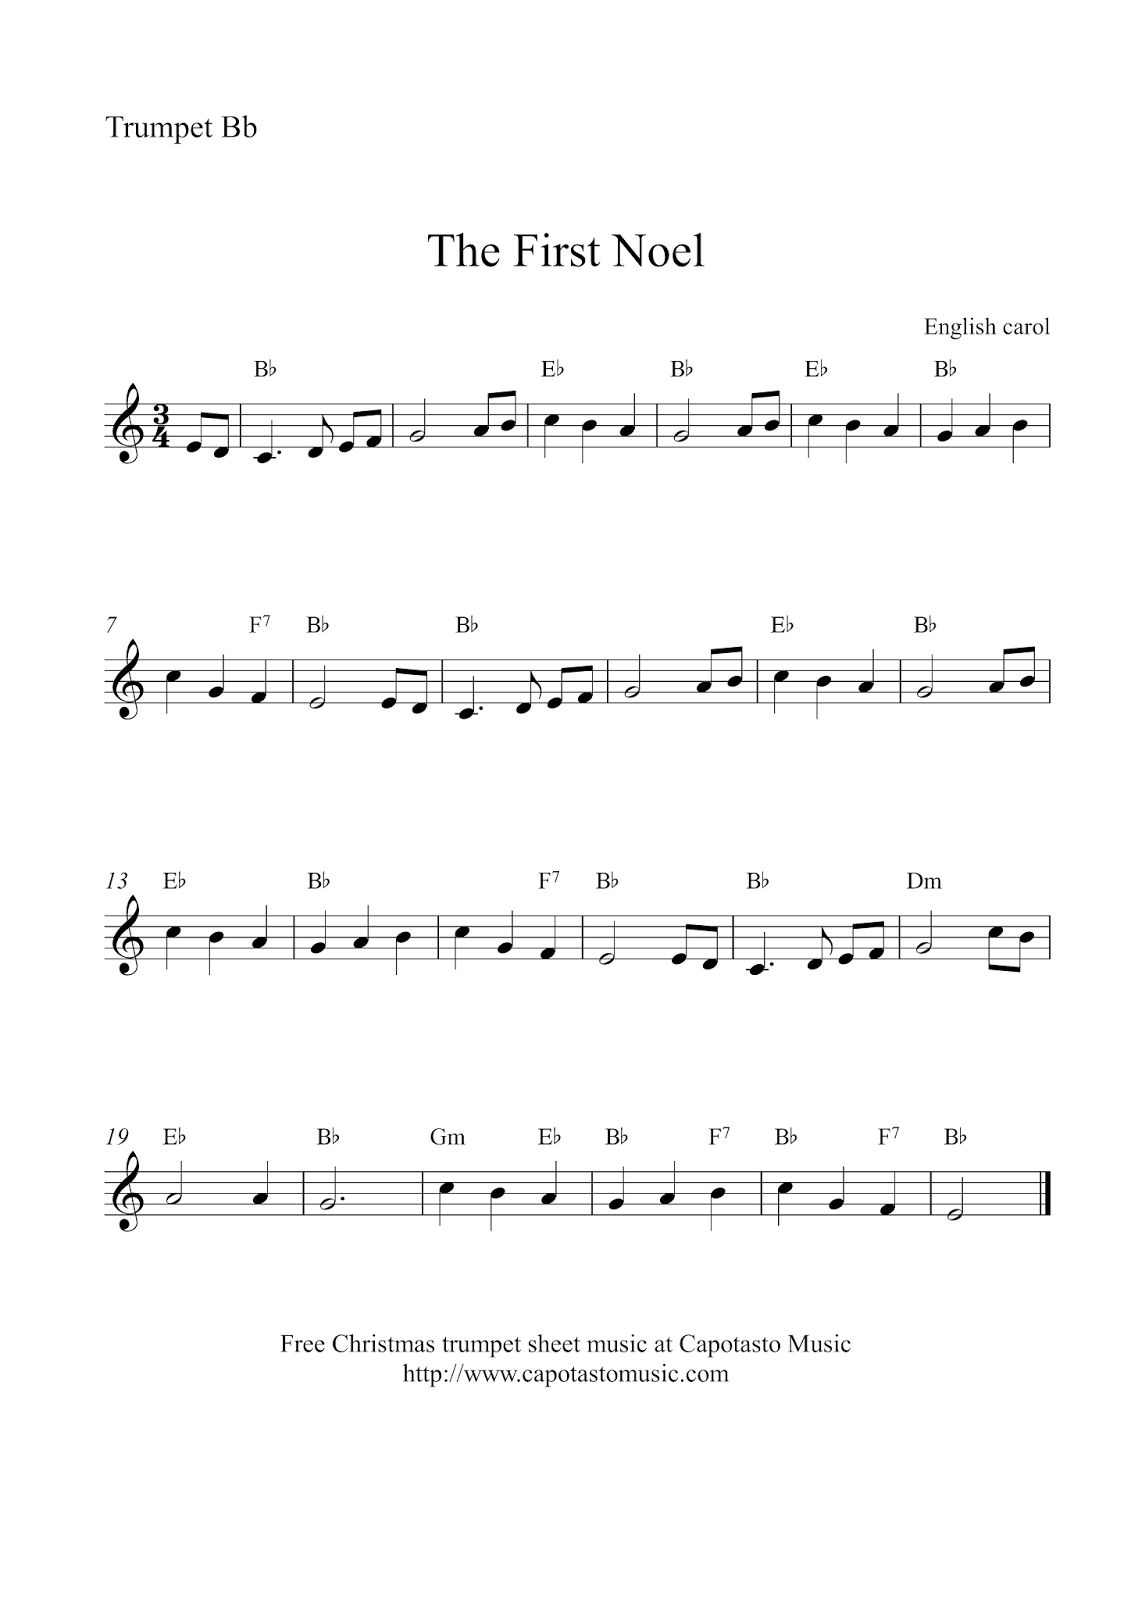 This is an image of Intrepid Free Printable Sheet Music for Trumpet